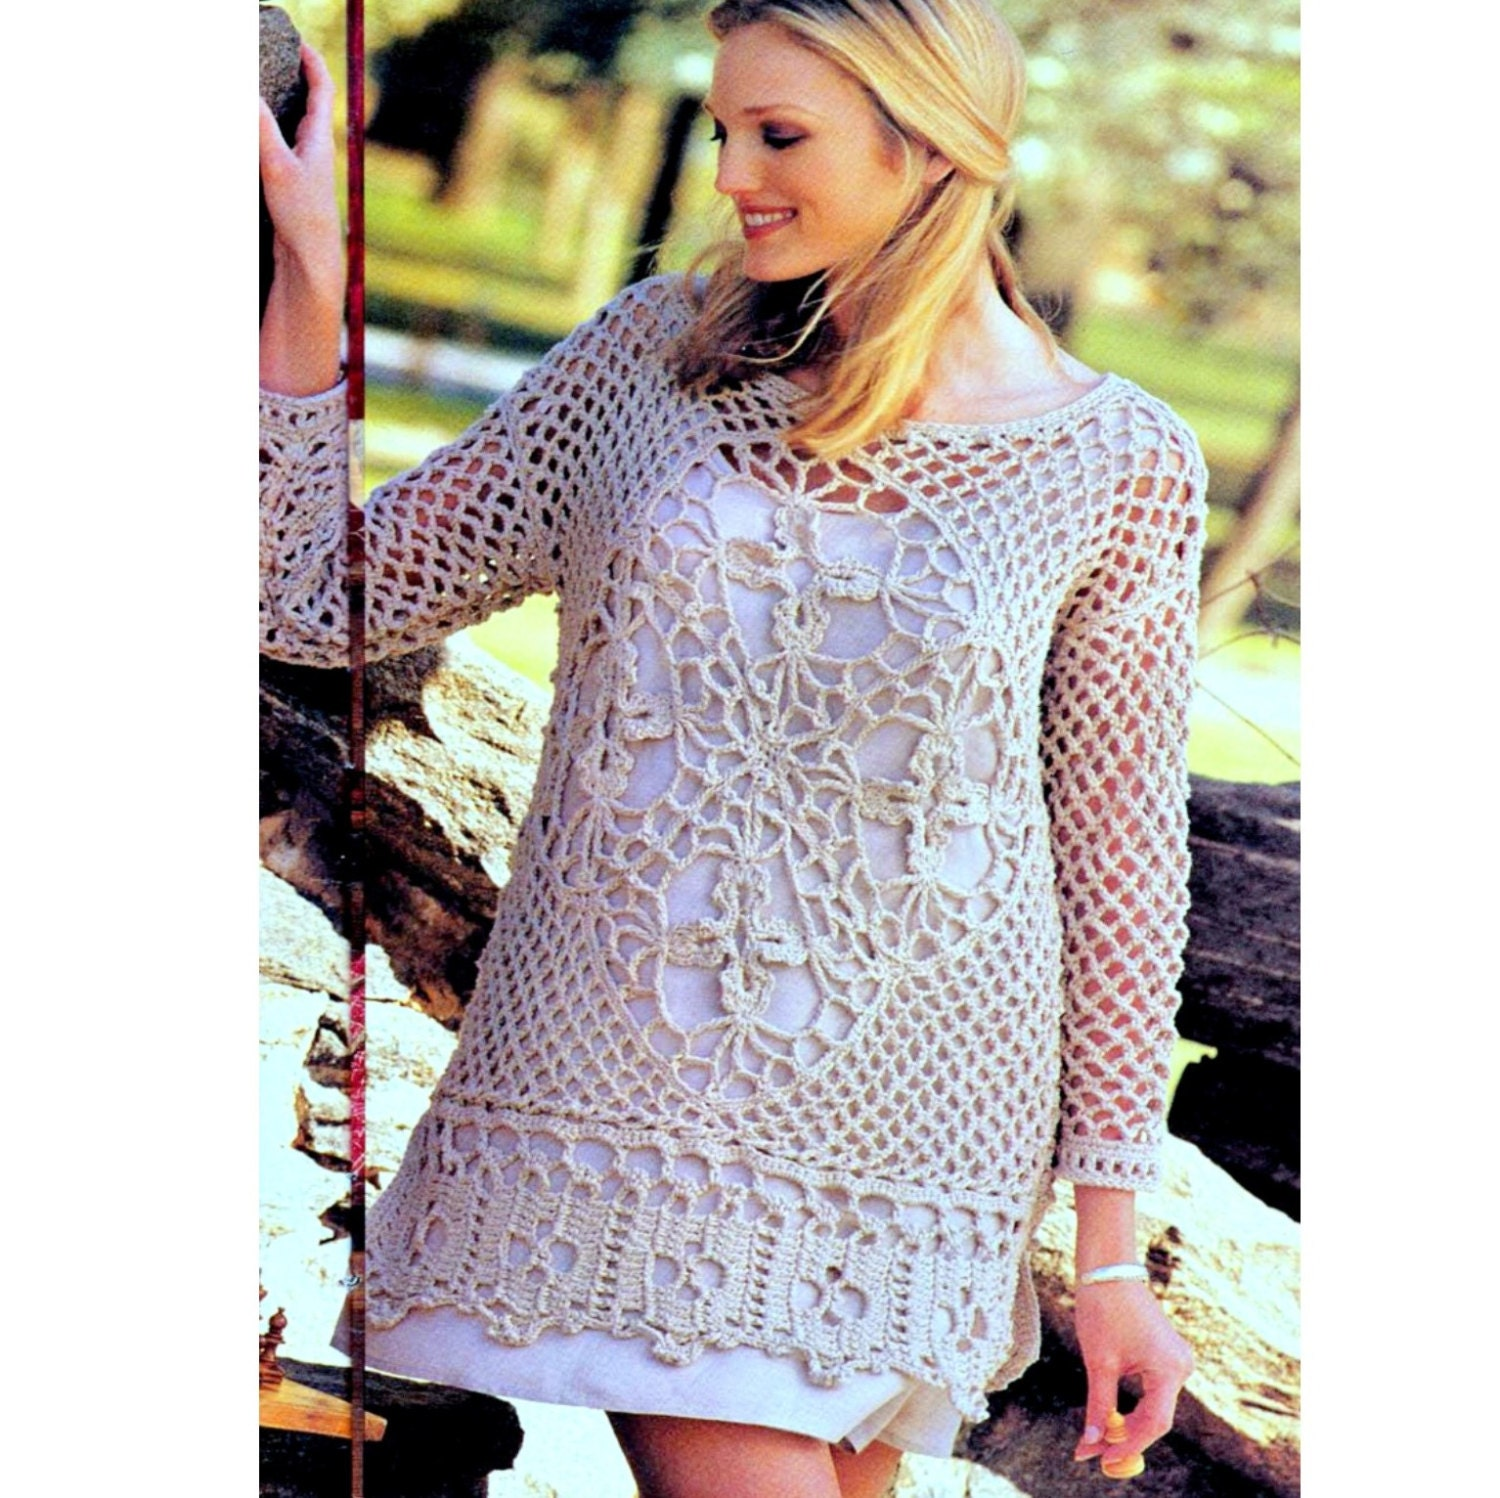 Instant download pdf vintage crochet pattern lace tunic beach instant download pdf vintage crochet pattern lace tunic beach cover up dress top mini retro plus free pattern bankloansurffo Gallery